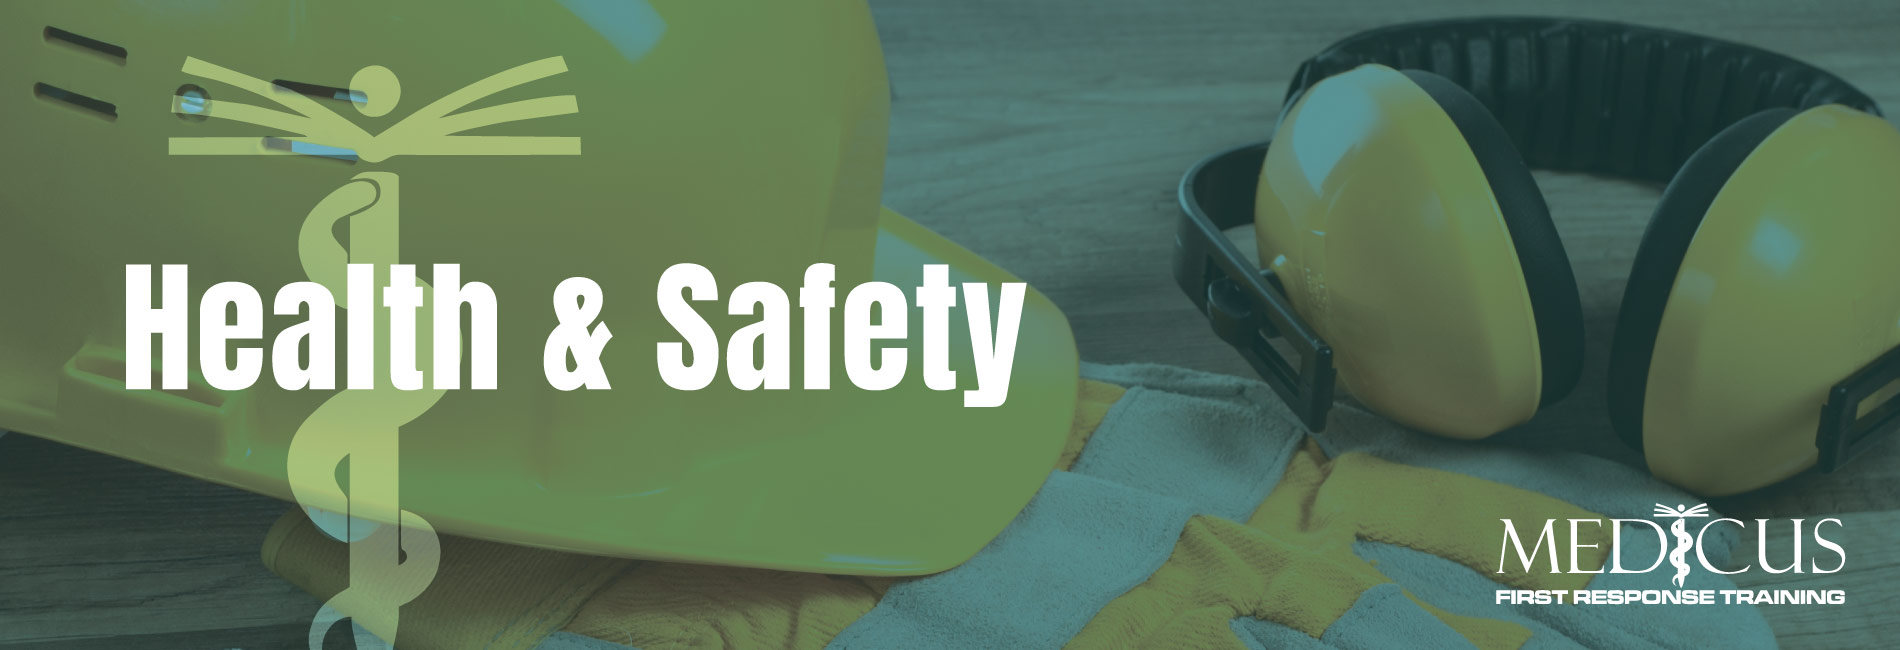 Medicus-Training-Carmarthen-Services-Health-and-Safety